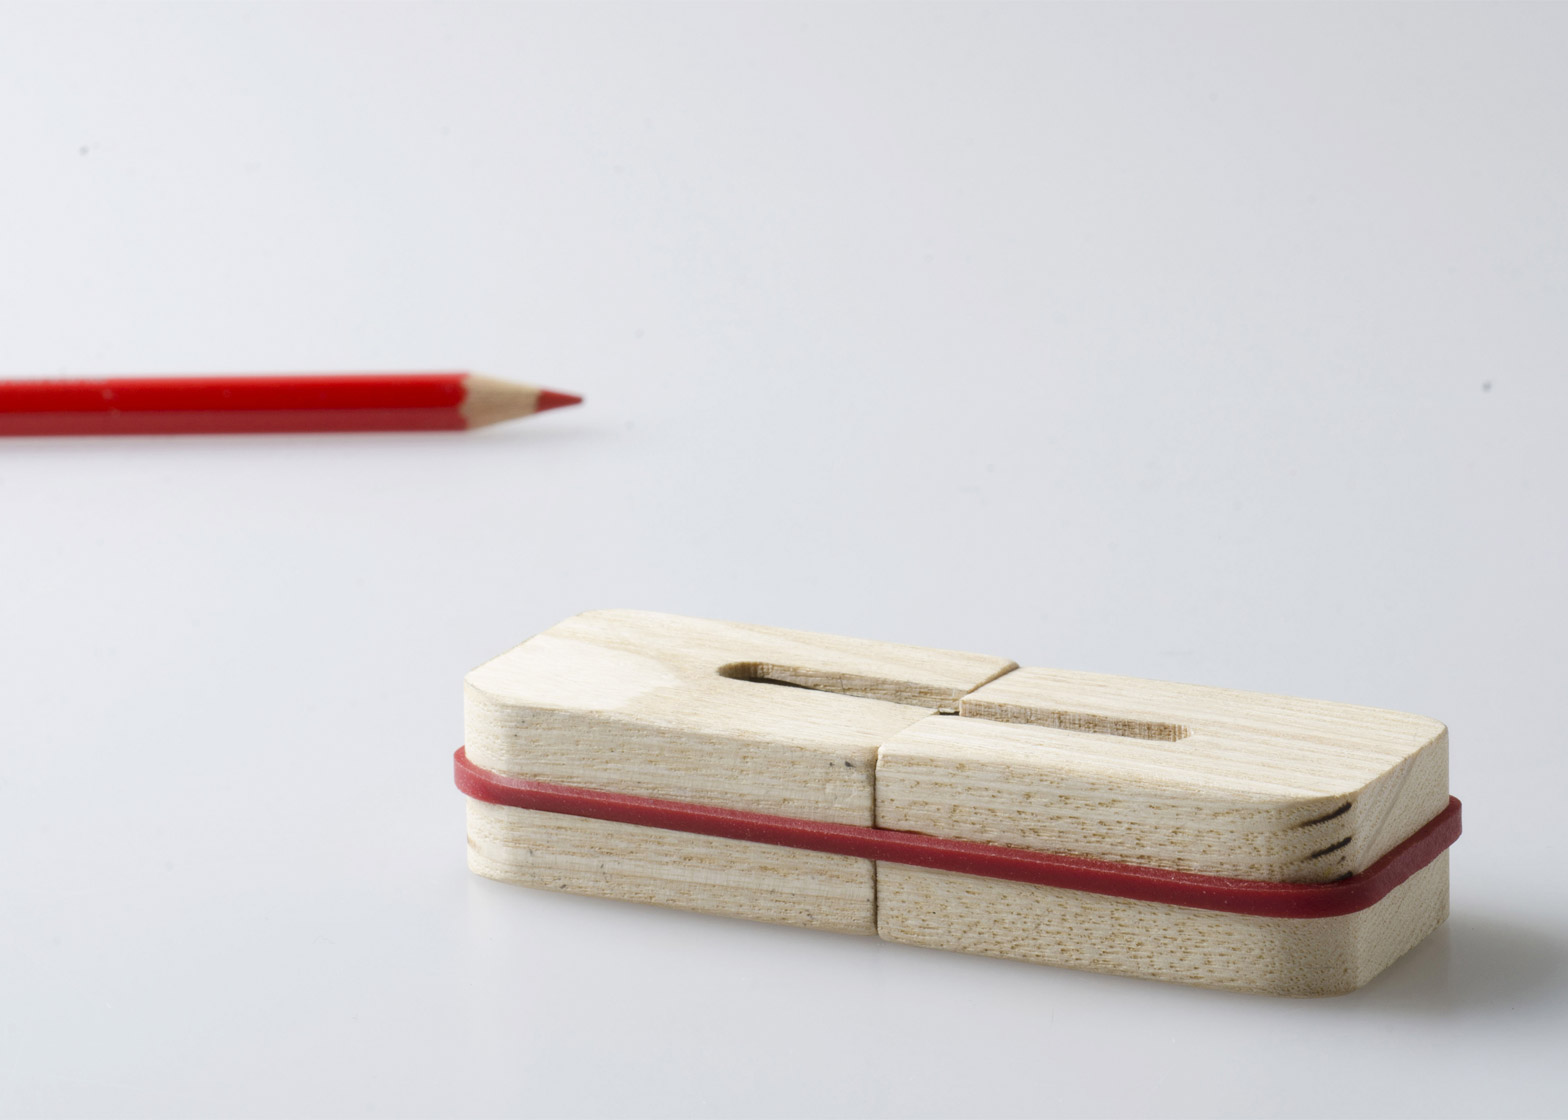 innovative-pencil-sharpeners-hisheji (11)